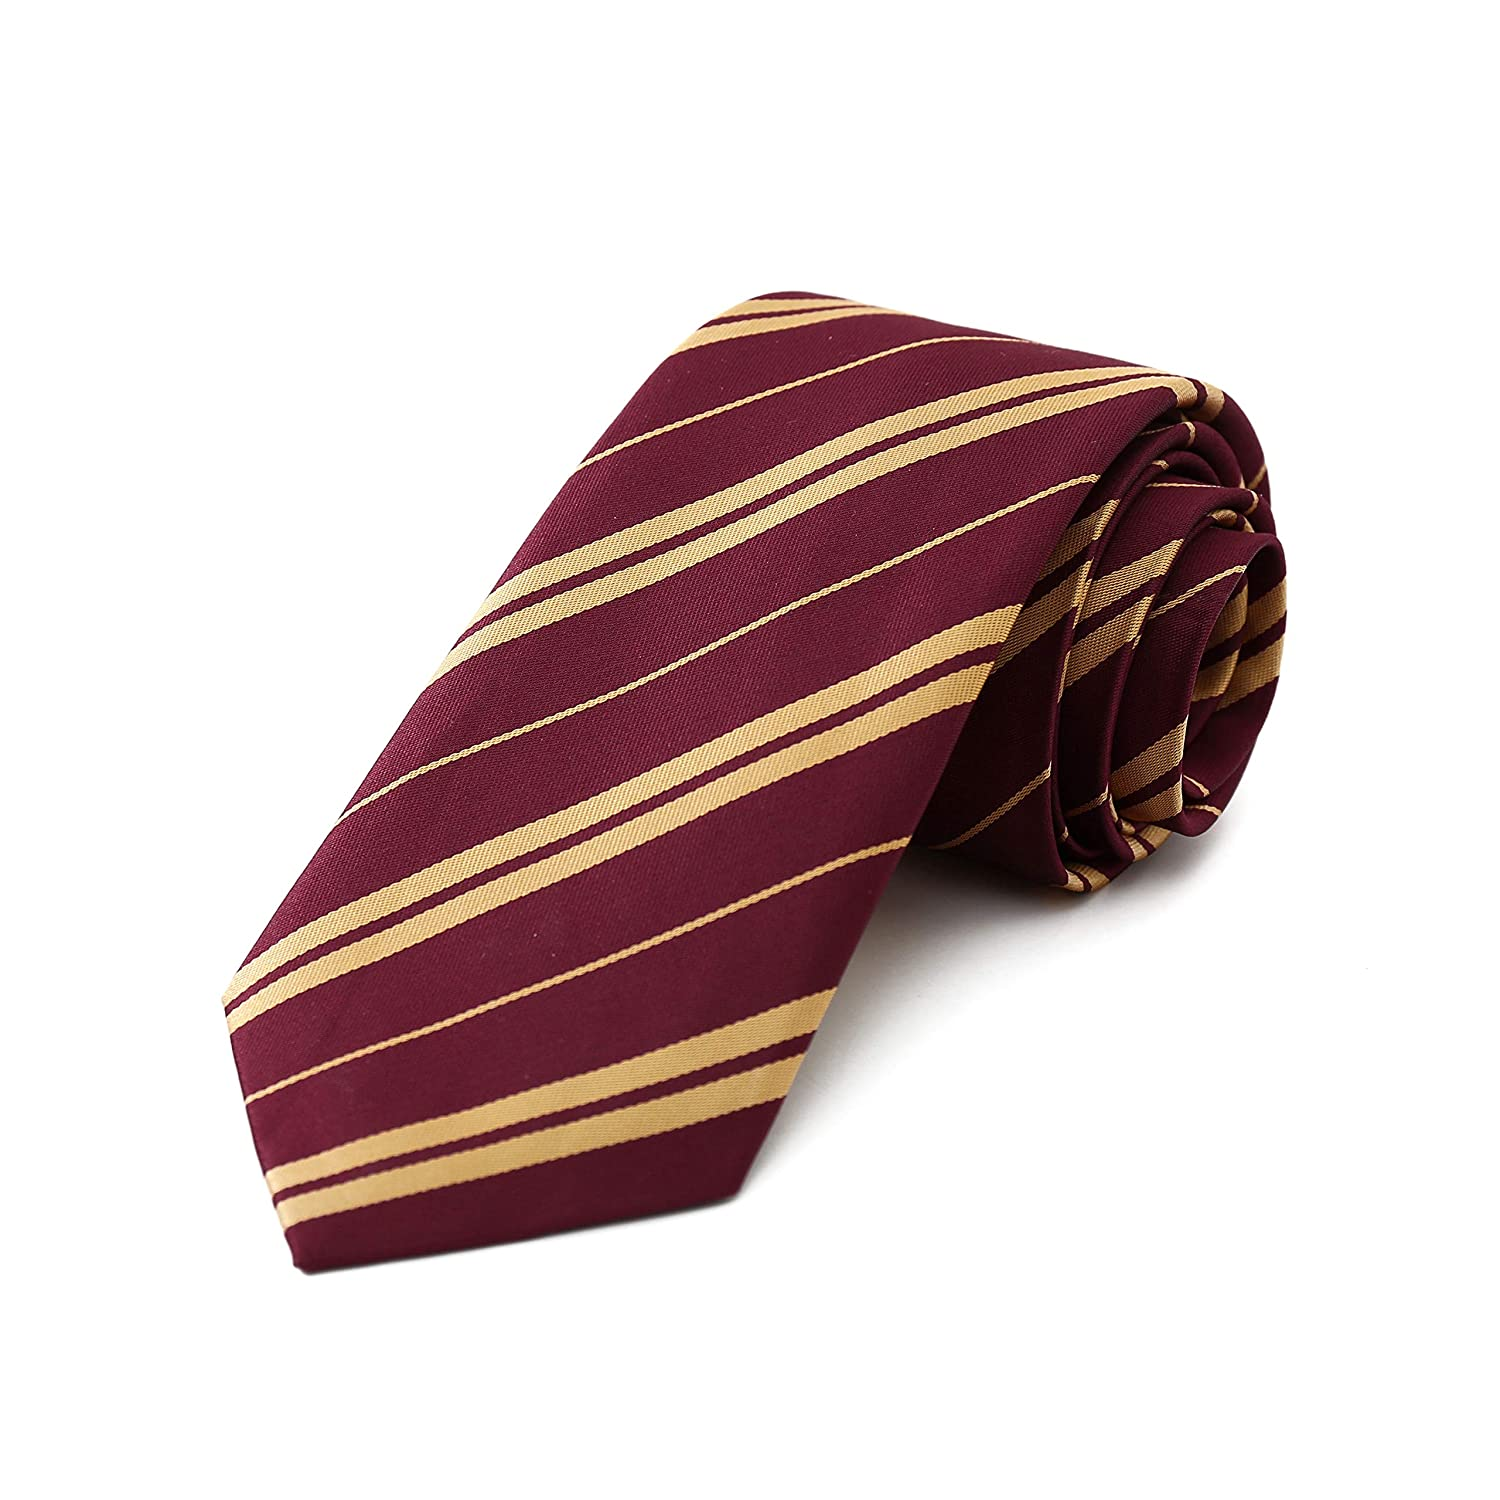 Giraffe Manufacturing Wizard Tie Harry Costume - Maroon and Gold Tie for Kids and Adults